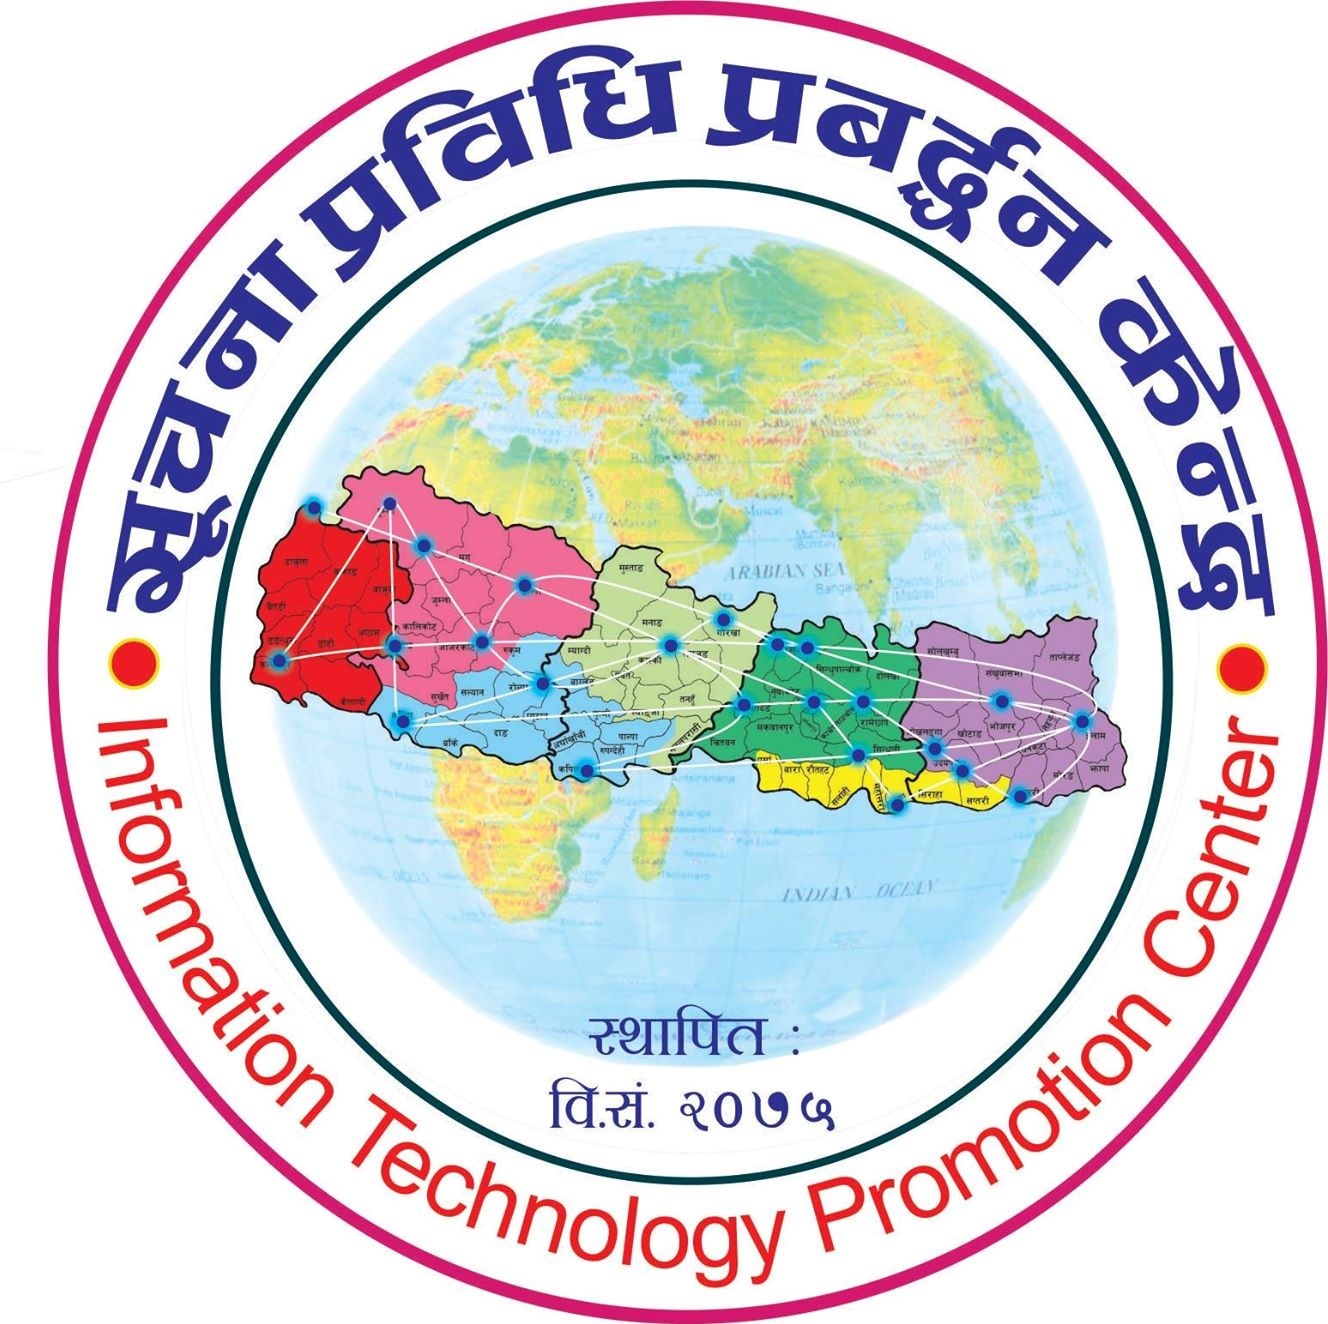 Information Technology Promotion Center